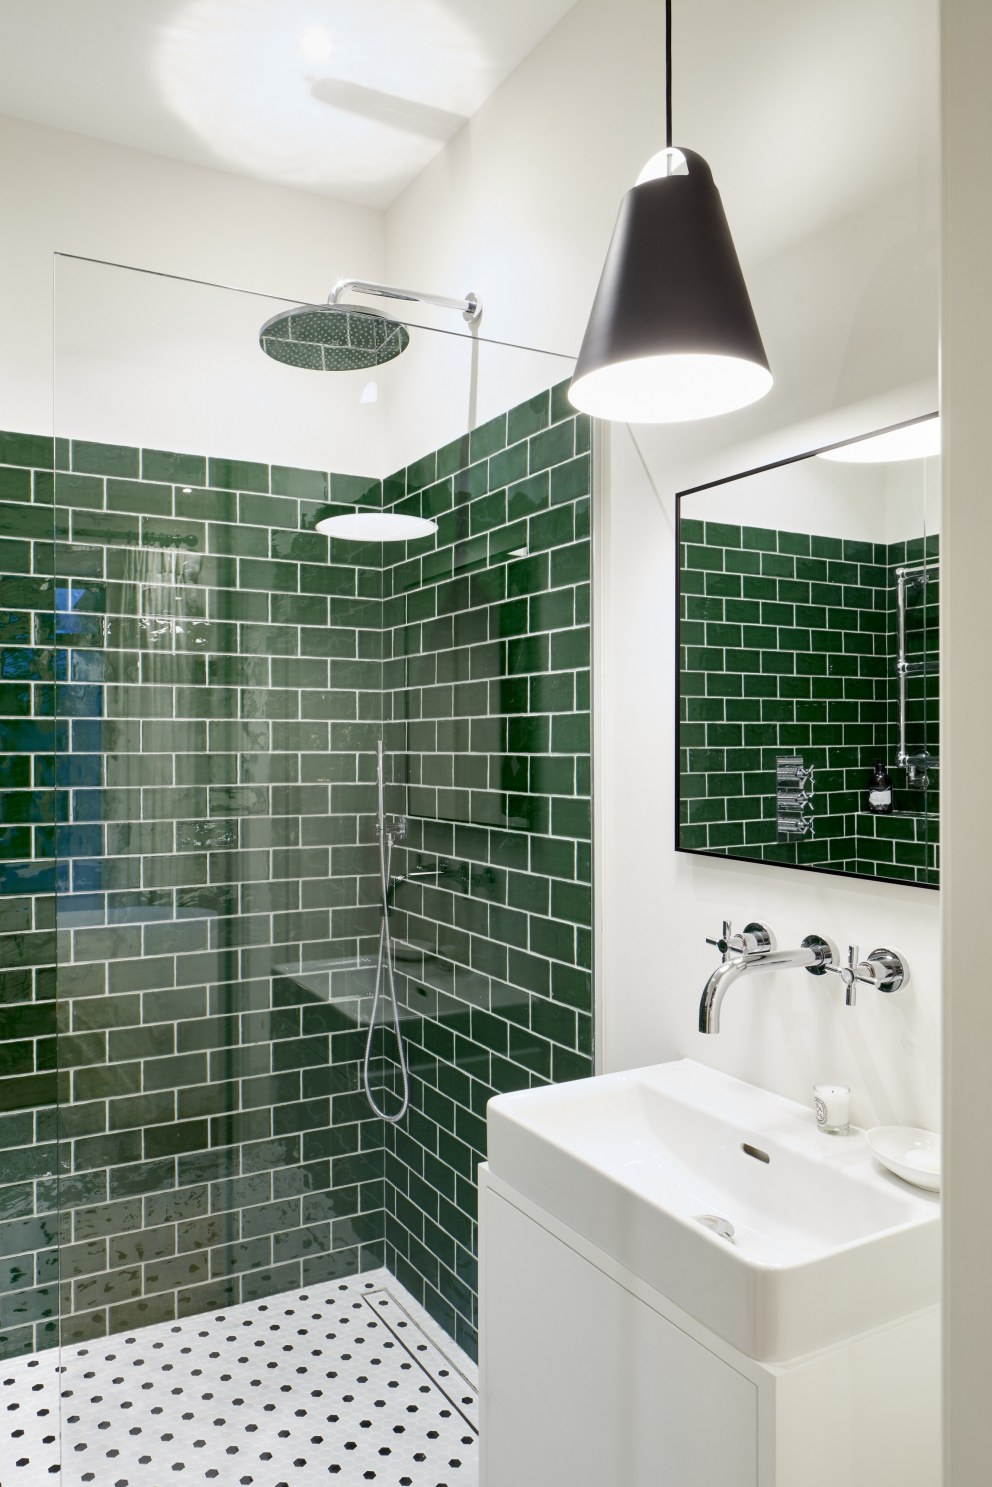 Chiddingstone Street | Chiddingstone Bathroom | Interior Designers